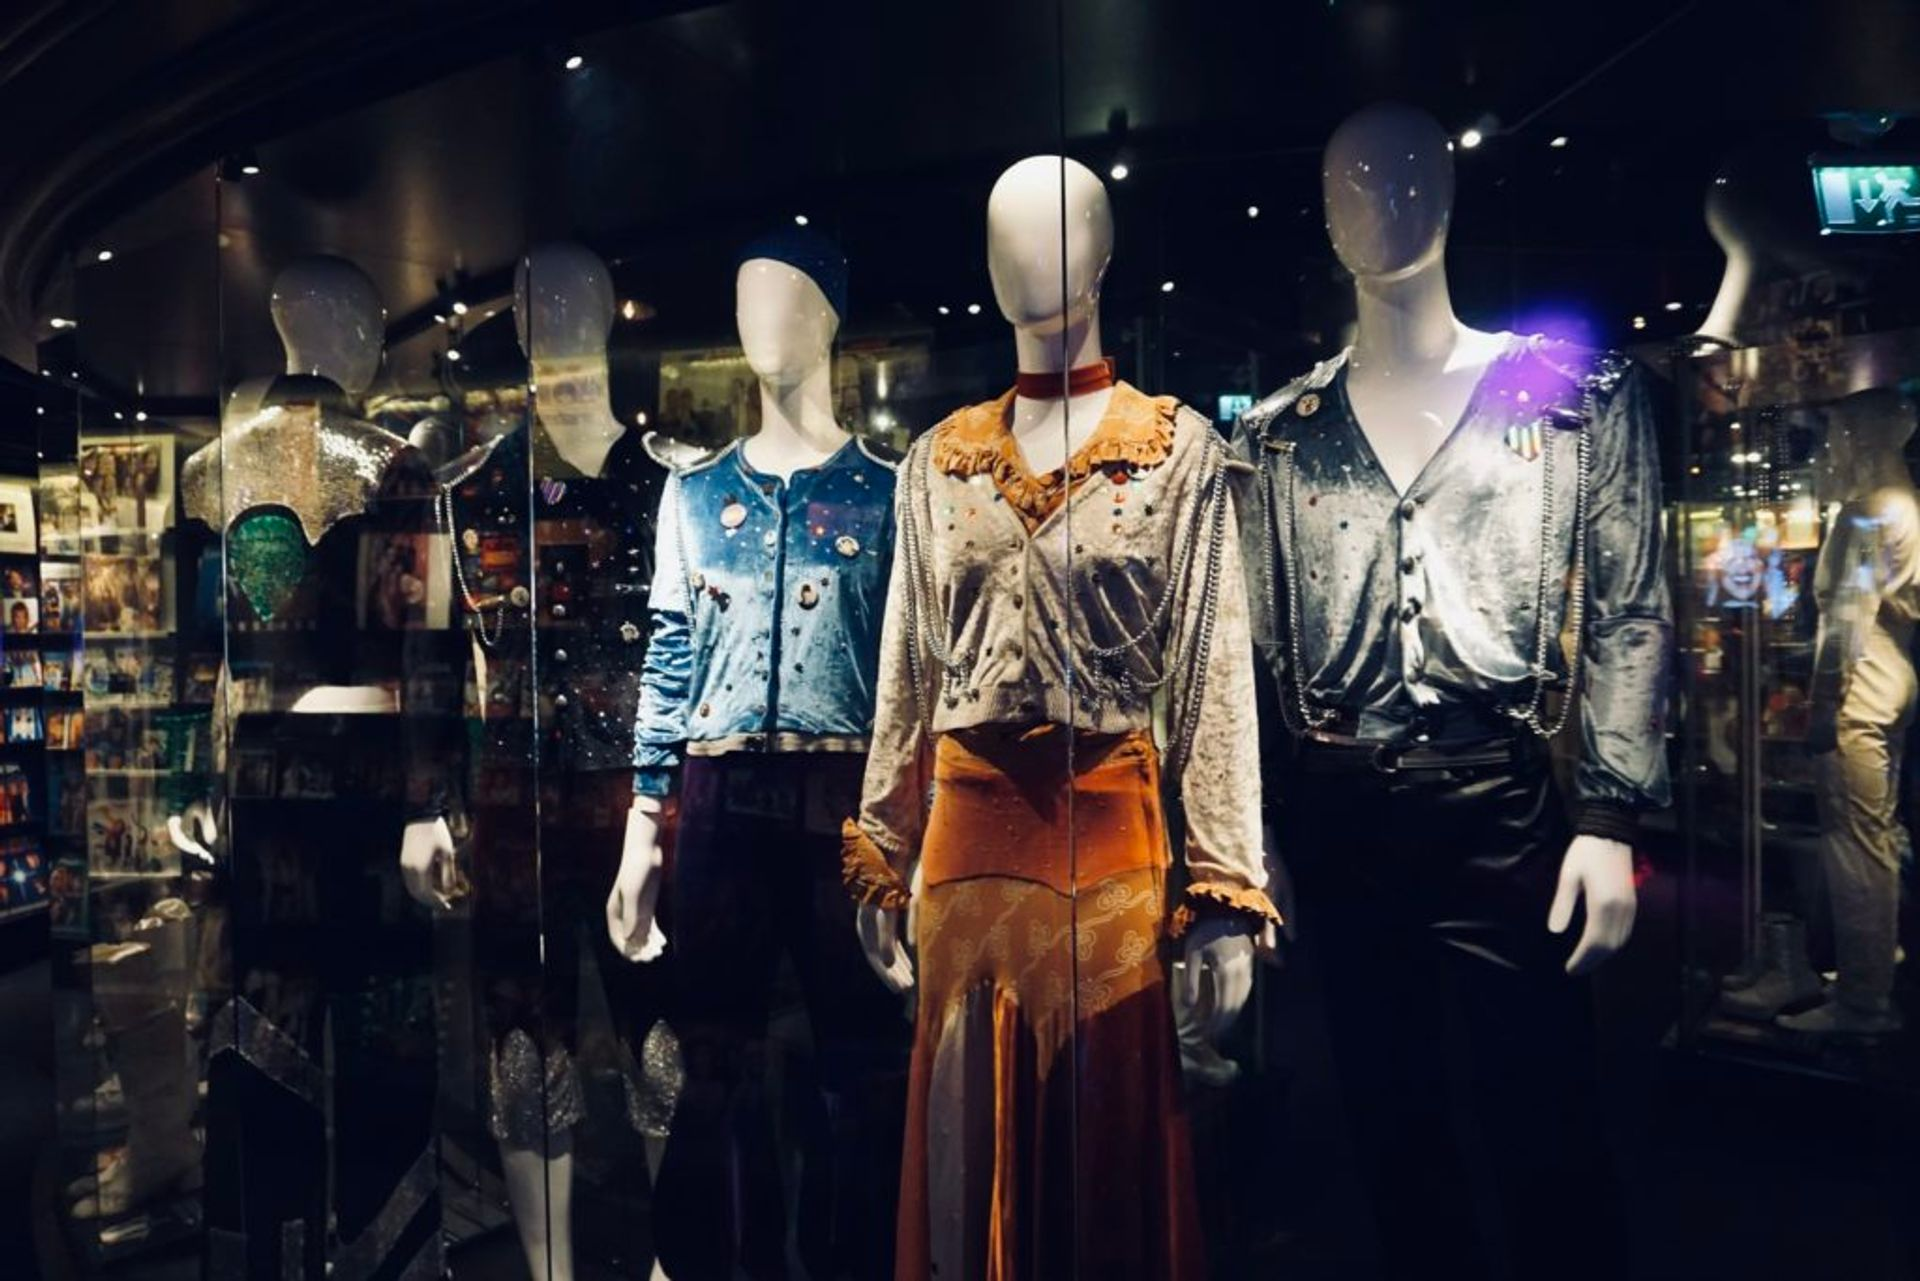 ABBA costumes in a exhibition cabinet.